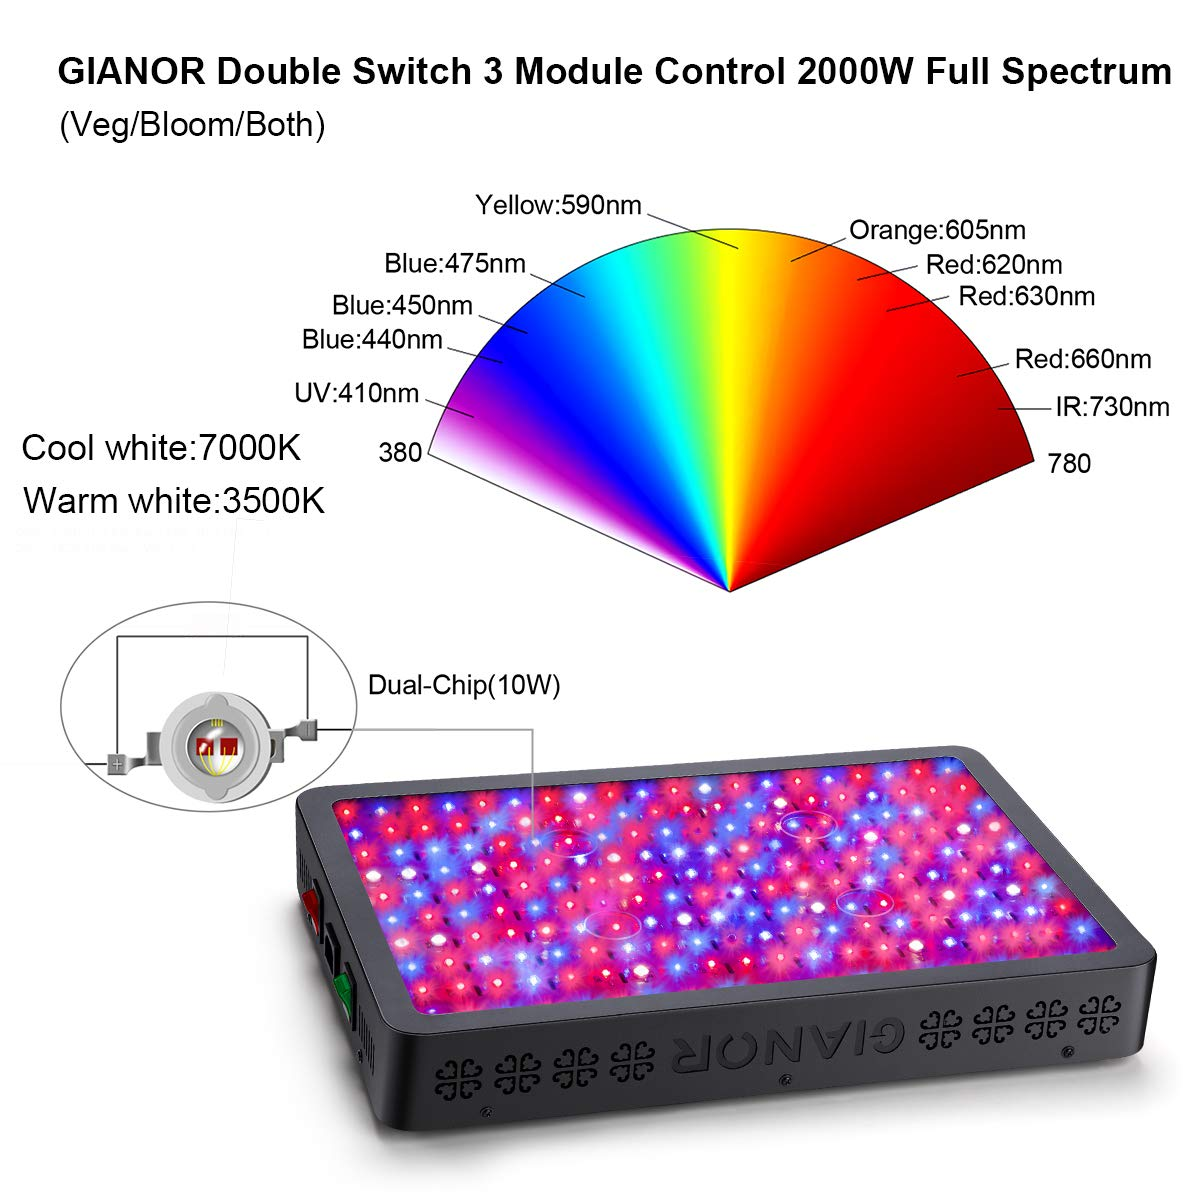 Gianor 2000W LED Grow Light, Full Spectrum Veg Bloom Double Switch Plant Lighting for Greenhouse Indoor Plant Veg and Flower Dual-chip 10W